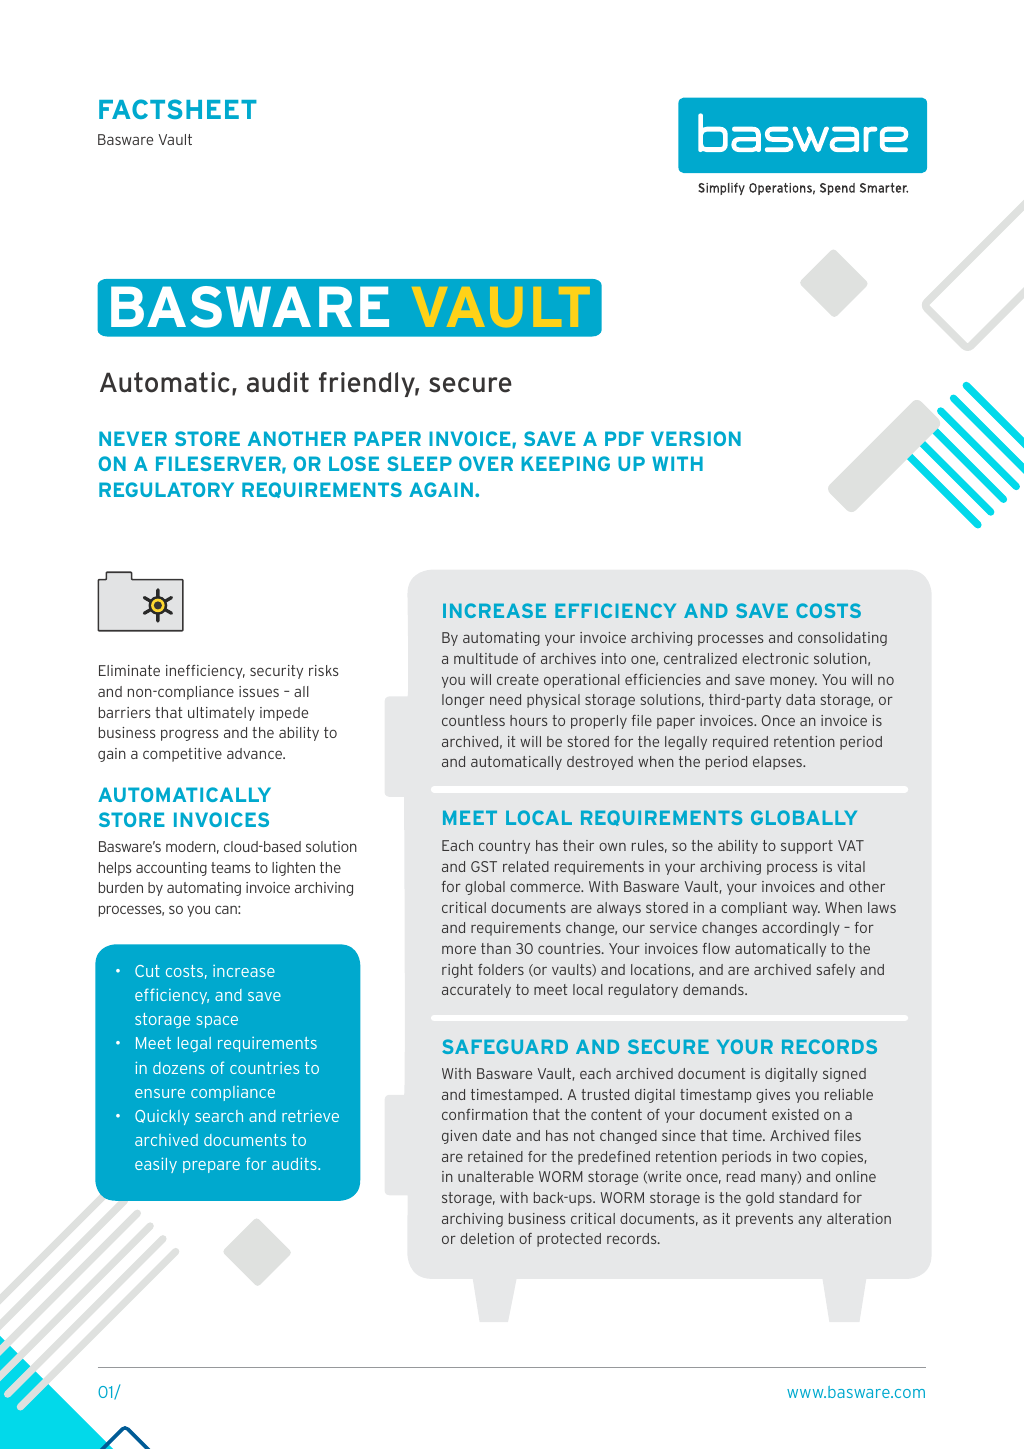 Achieve Total Document Compliance with Basware Archive - Basware